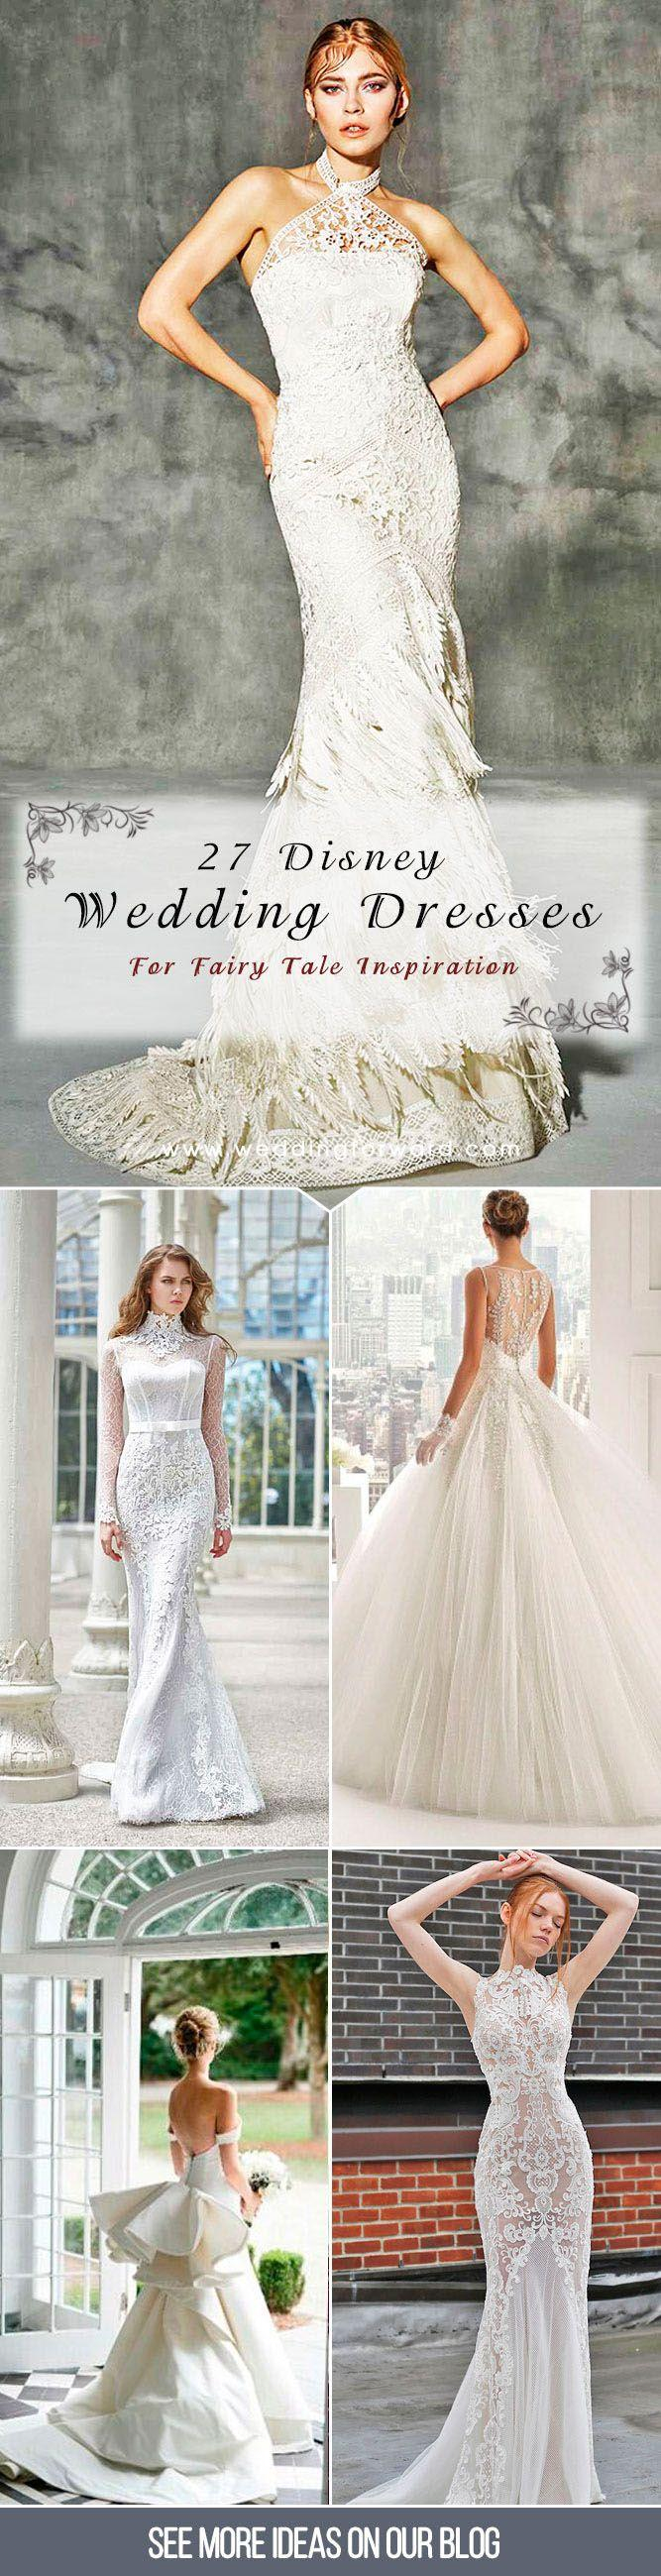 Mariage - 27 Disney Wedding Dresses For Fairy Tale Inspiration